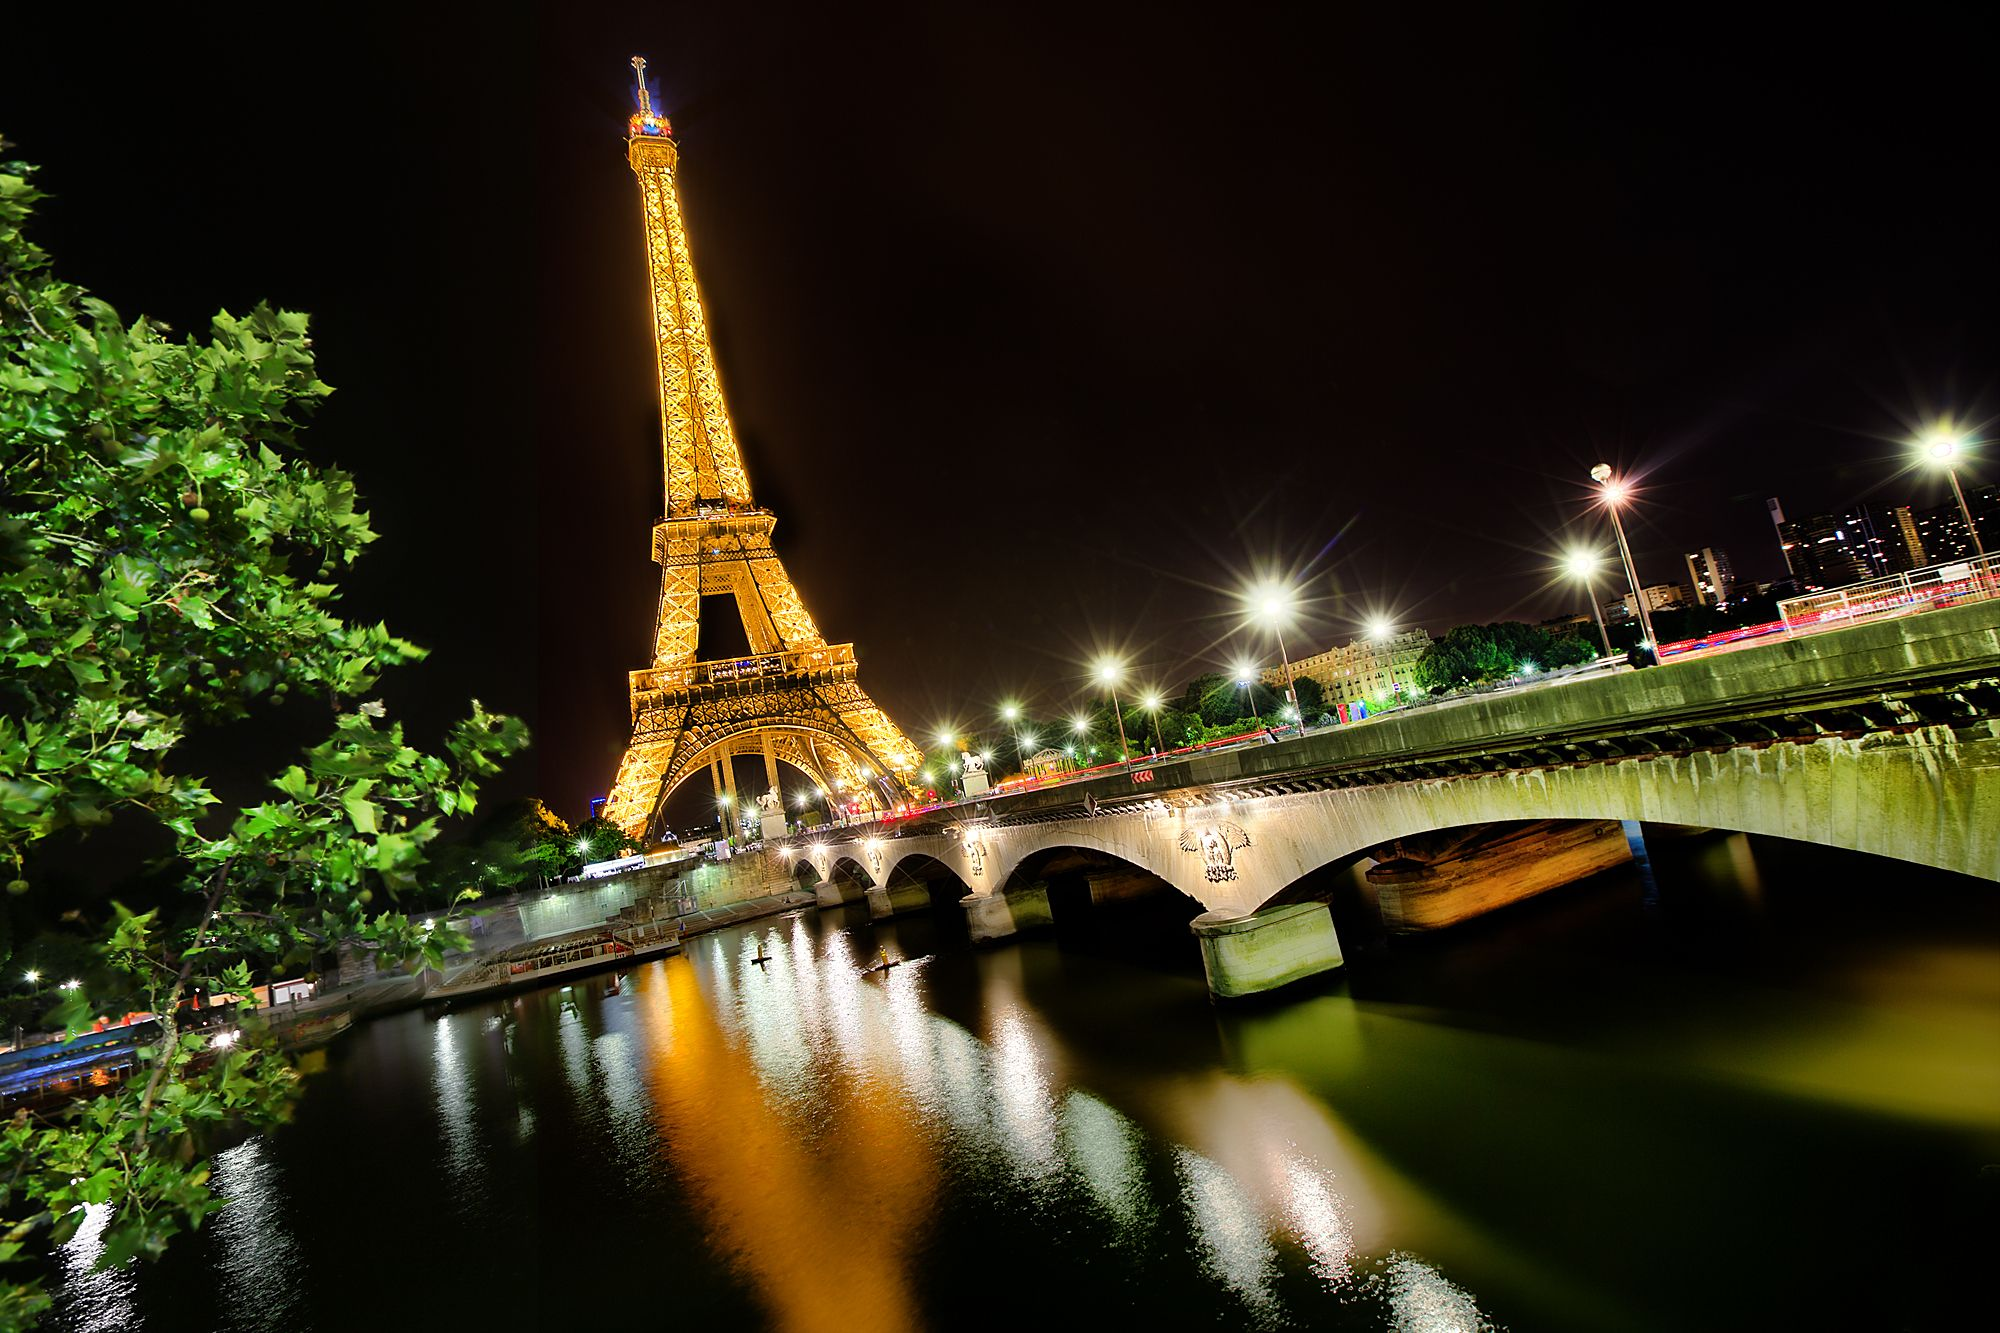 Paris Tower Pictures HD Wallpaper 1080p | Picture Used For Book\'s ...